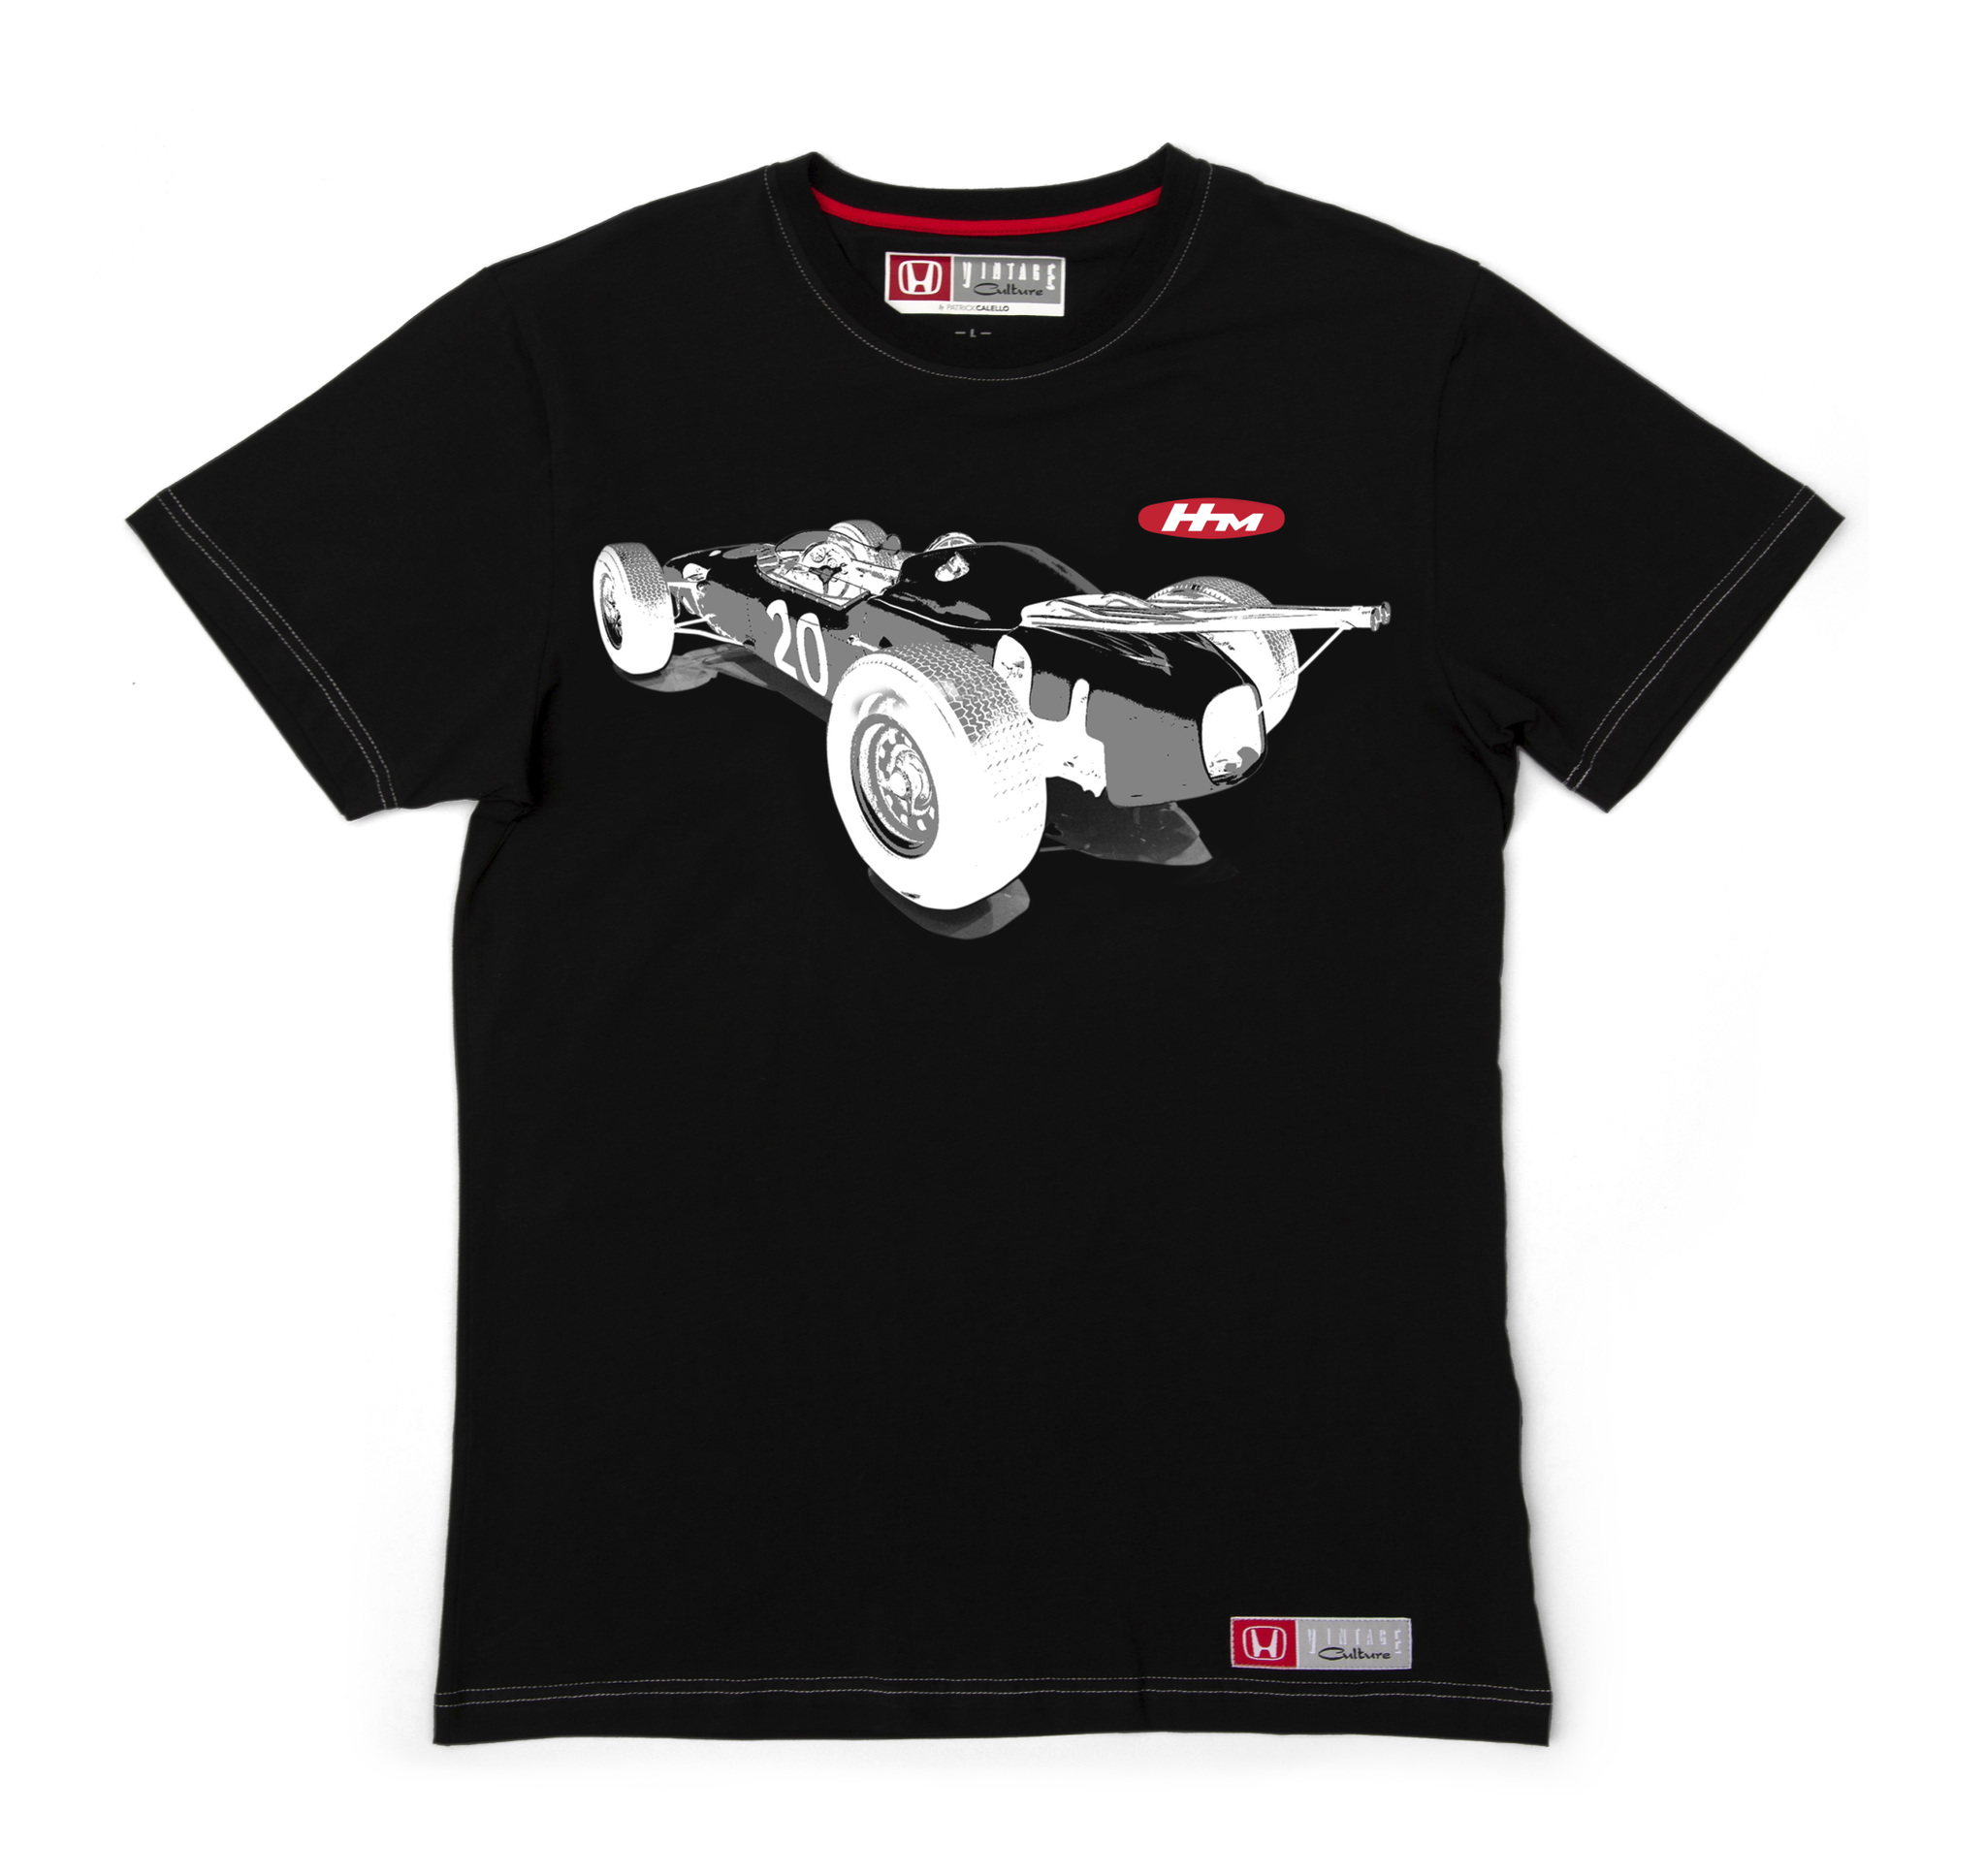 Honda Vintage Culture RA271 Inverted Tee